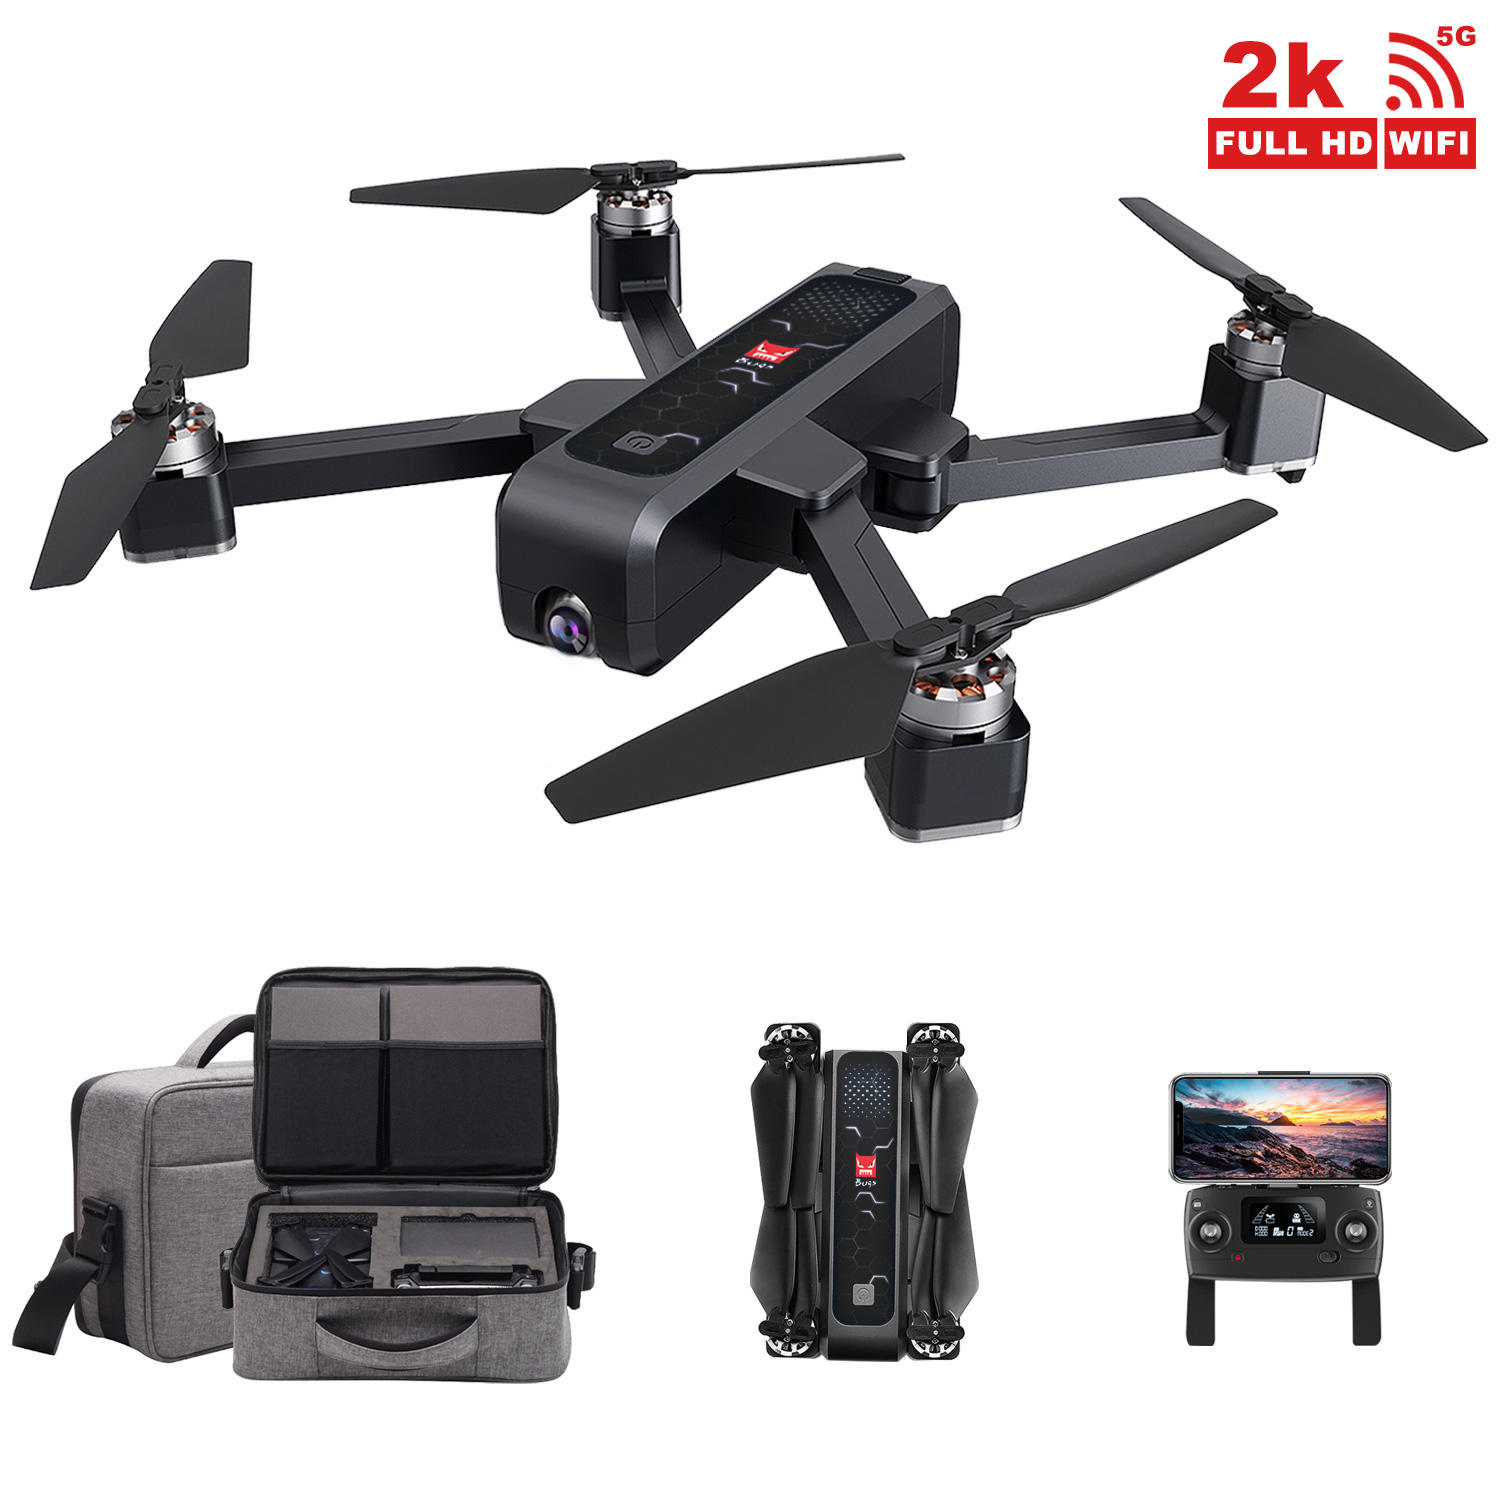 Bugs 4W GPS RC Drone with 2K camera 5G WiFi FPV Optical Flow Positioning B4W Foldable Quadcopter Follow Me